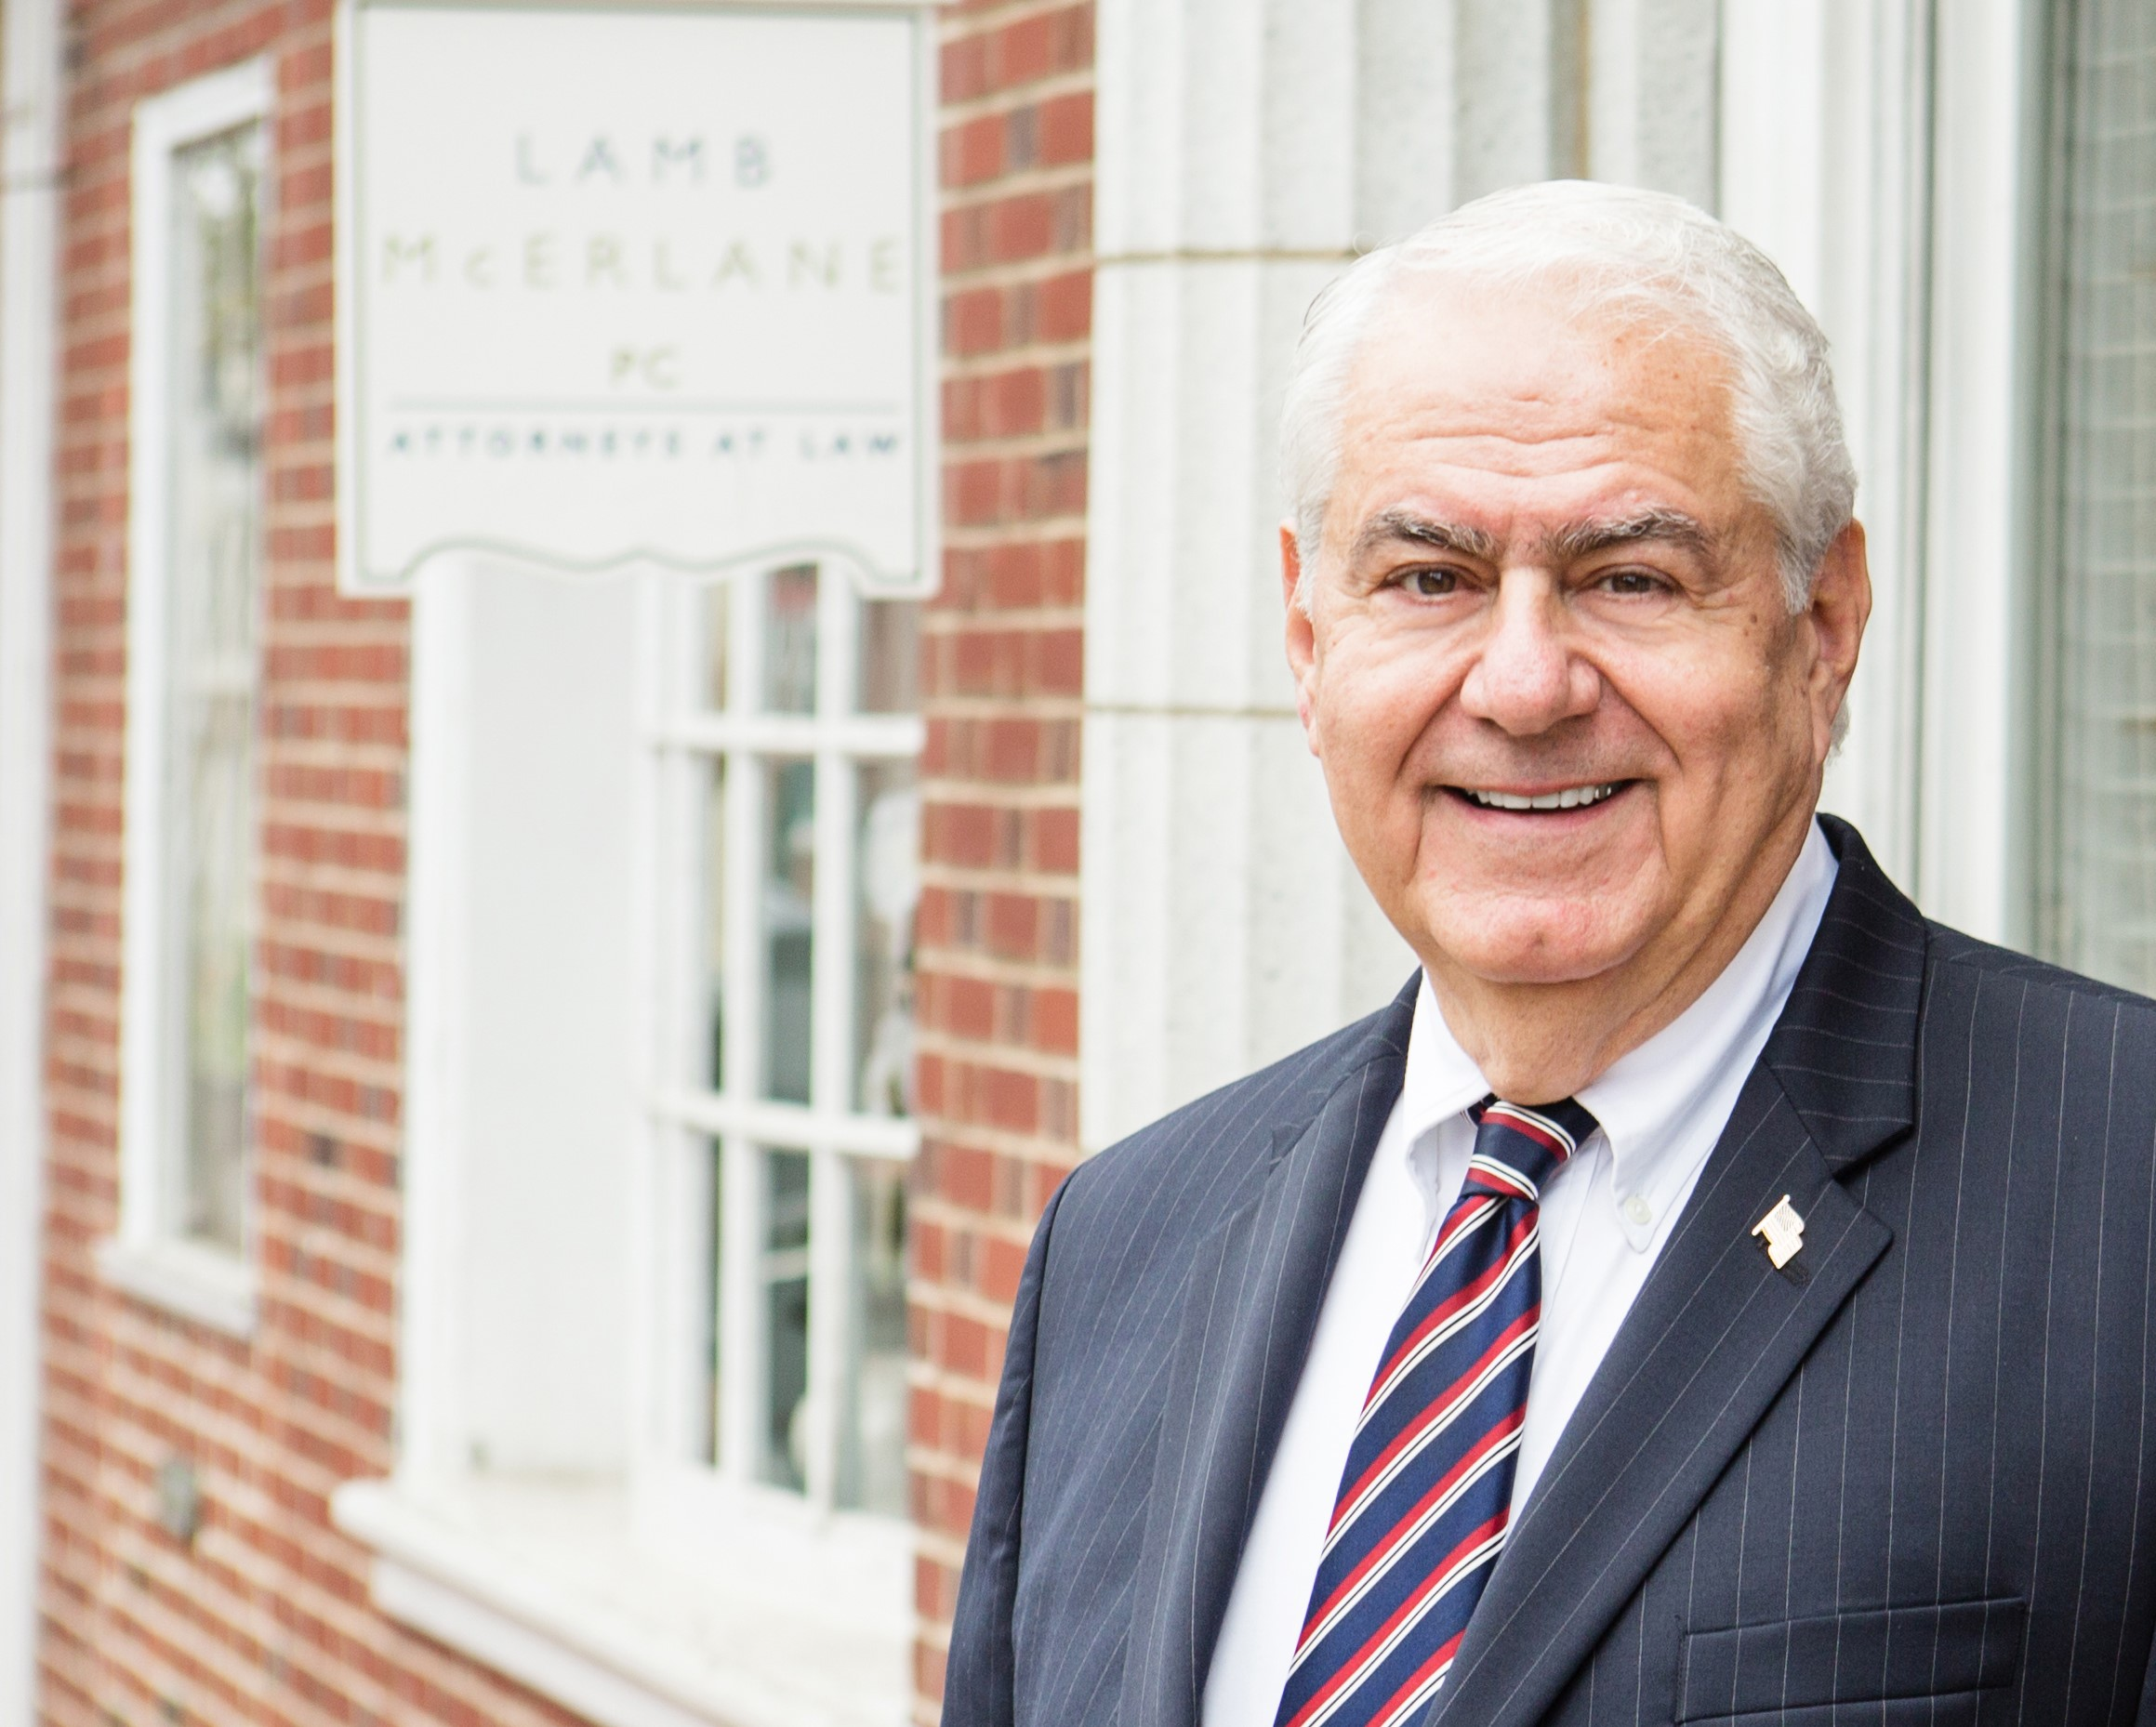 Lamb McErlane Partner Praises 'Exemplary' Work of County's Voter Services During Presidential Recount